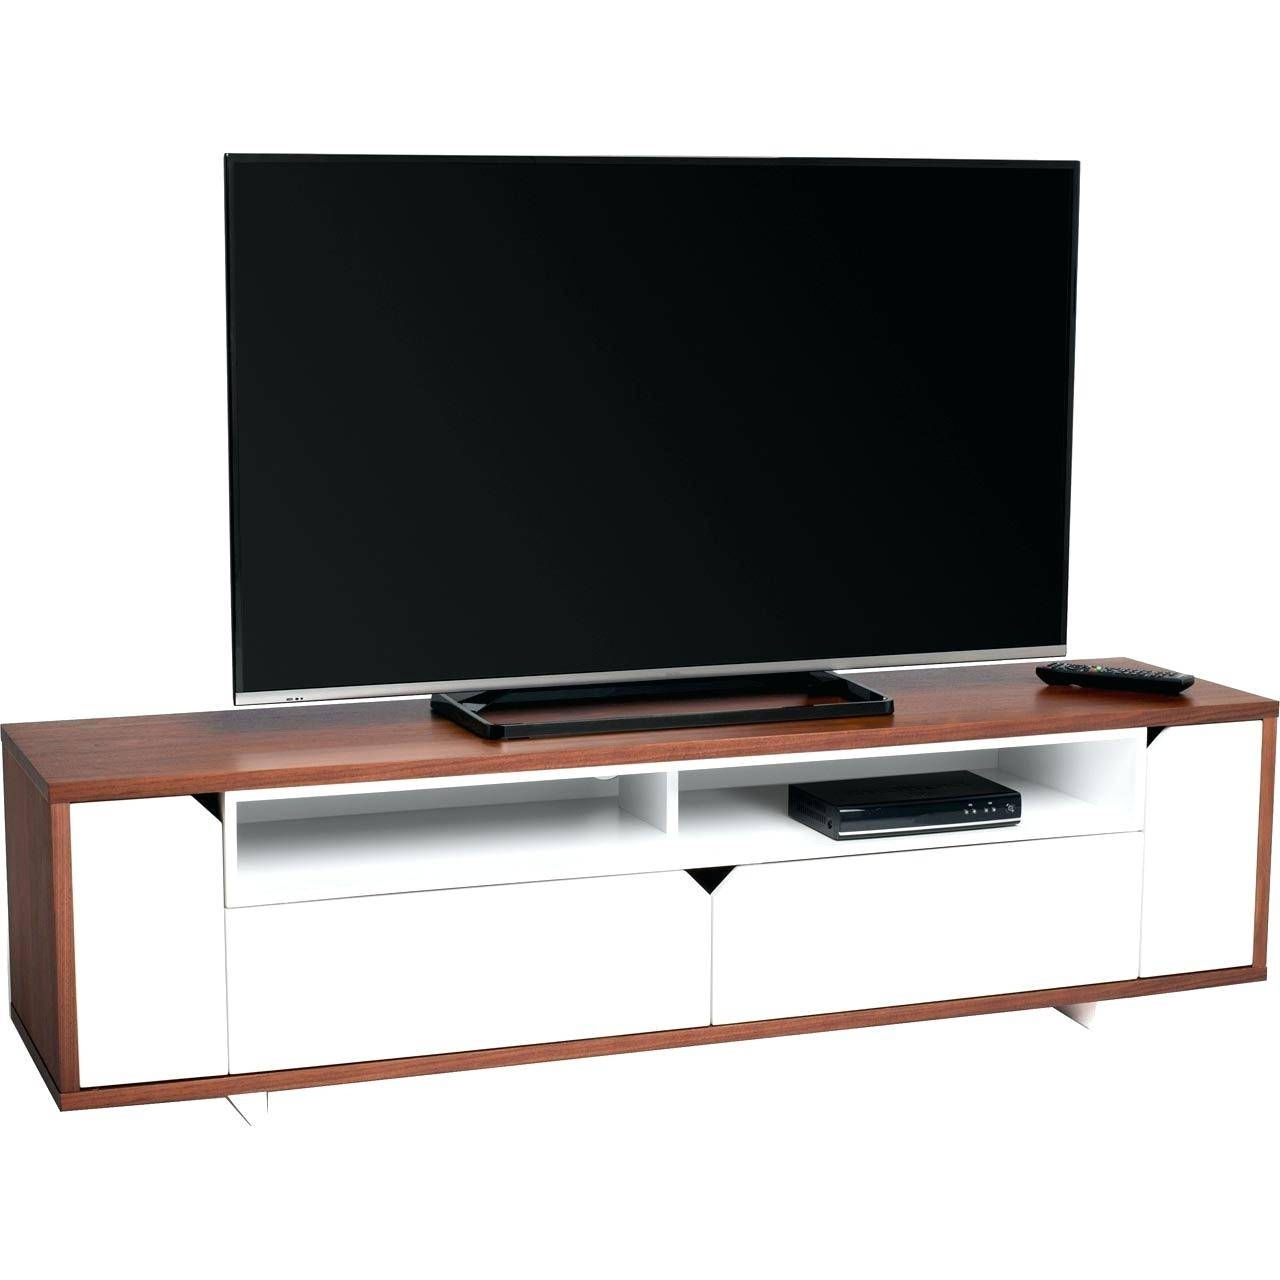 Articles With Cheap Techlink Tv Stands Tag: Gorgeous Techlink Tv throughout Cheap Techlink Tv Stands (Image 3 of 15)